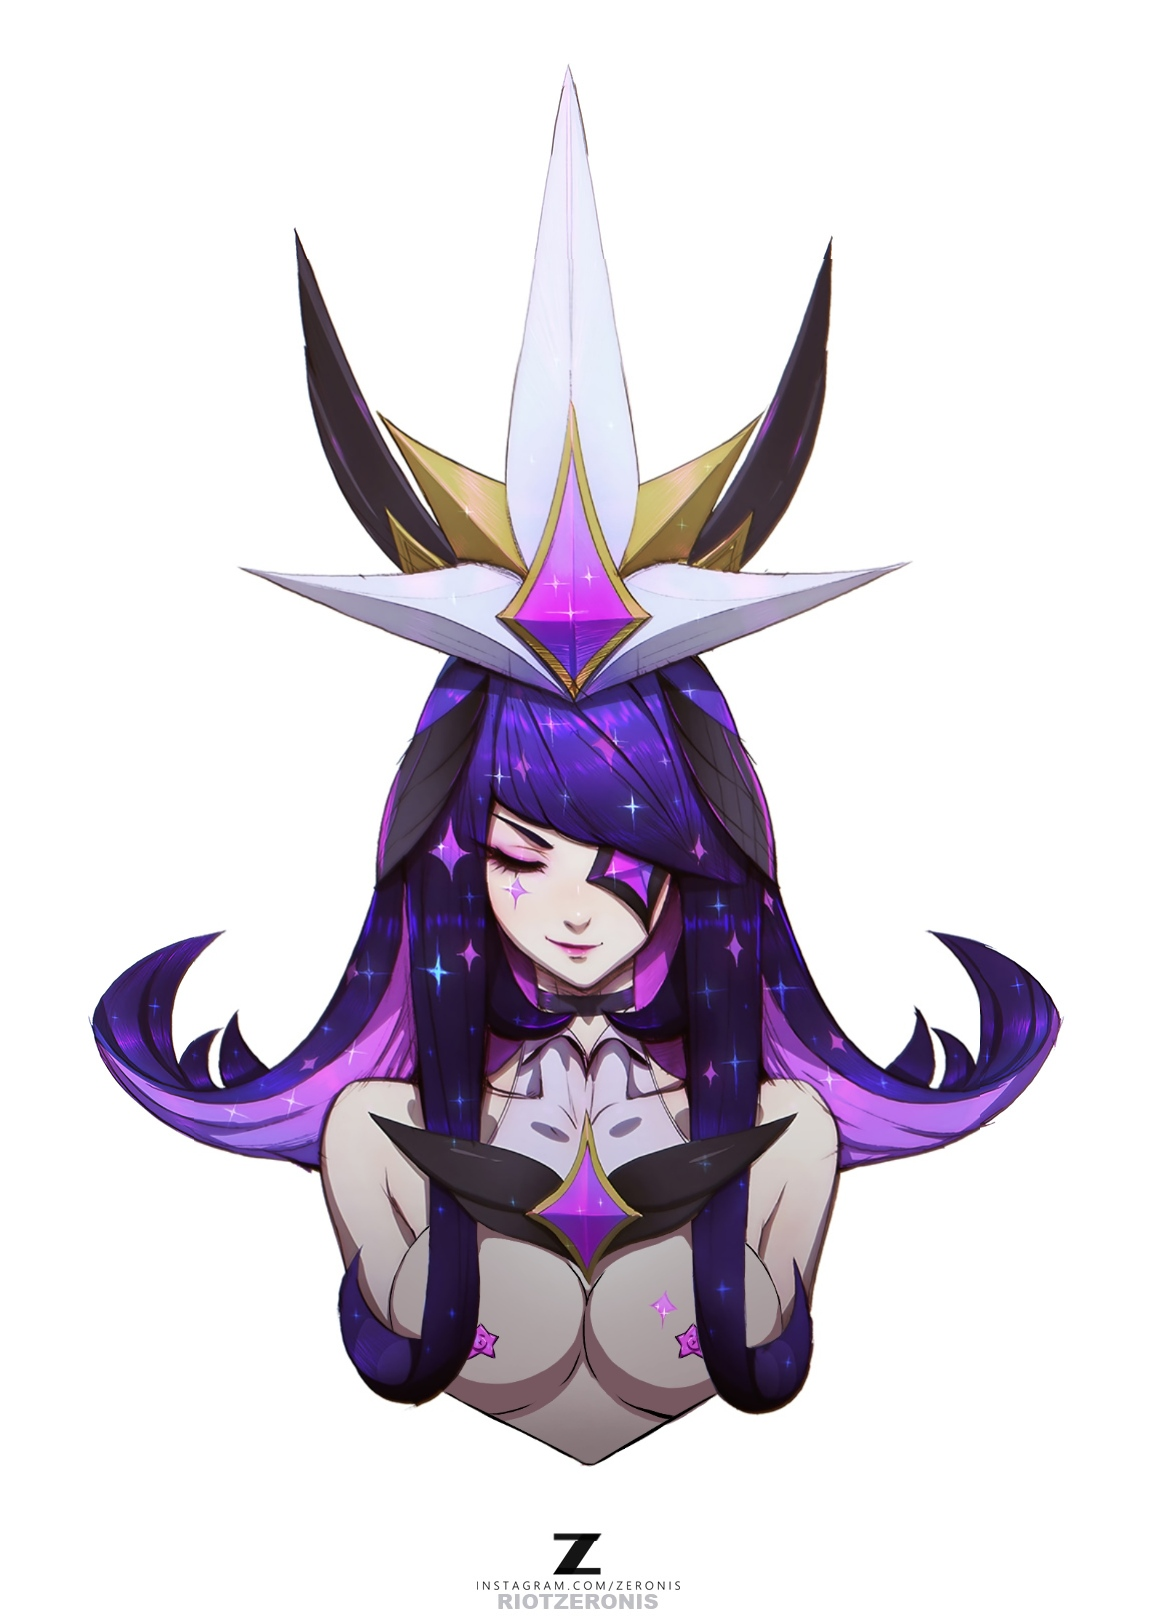 3255377 - League_of_Legends Syndra Zeronis